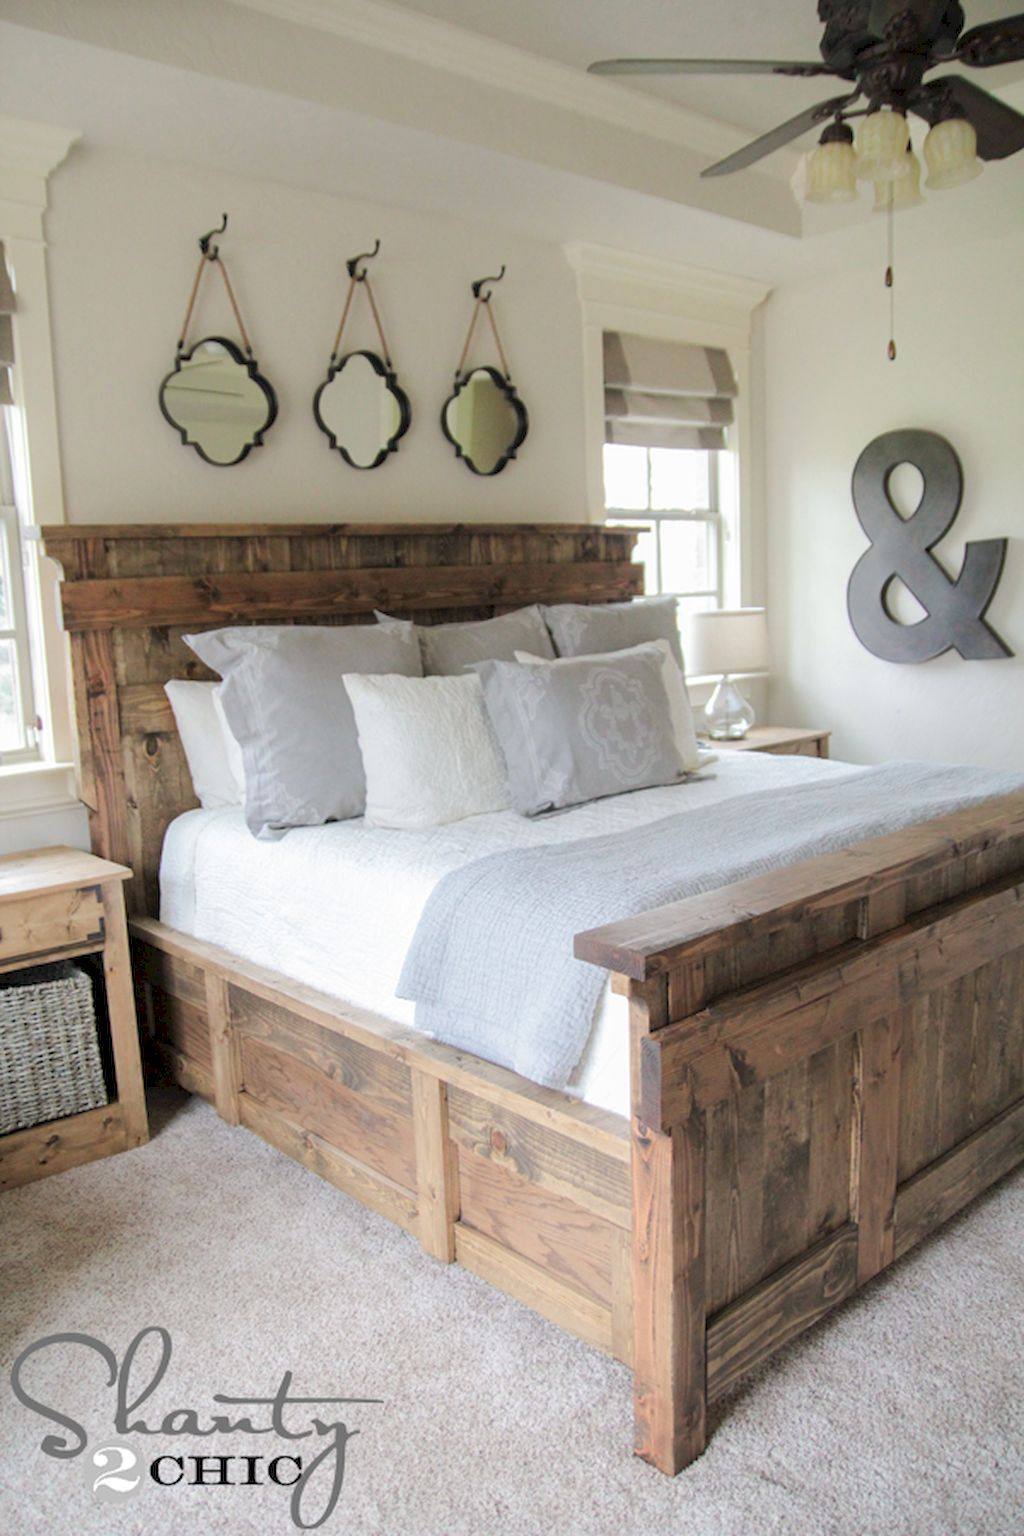 Cool 51 Rustic Farmhouse Style Master Bedroom Ideas  Https://besideroom.co/51 Rustic Farmhouse Style Master Bedroom Ideas/